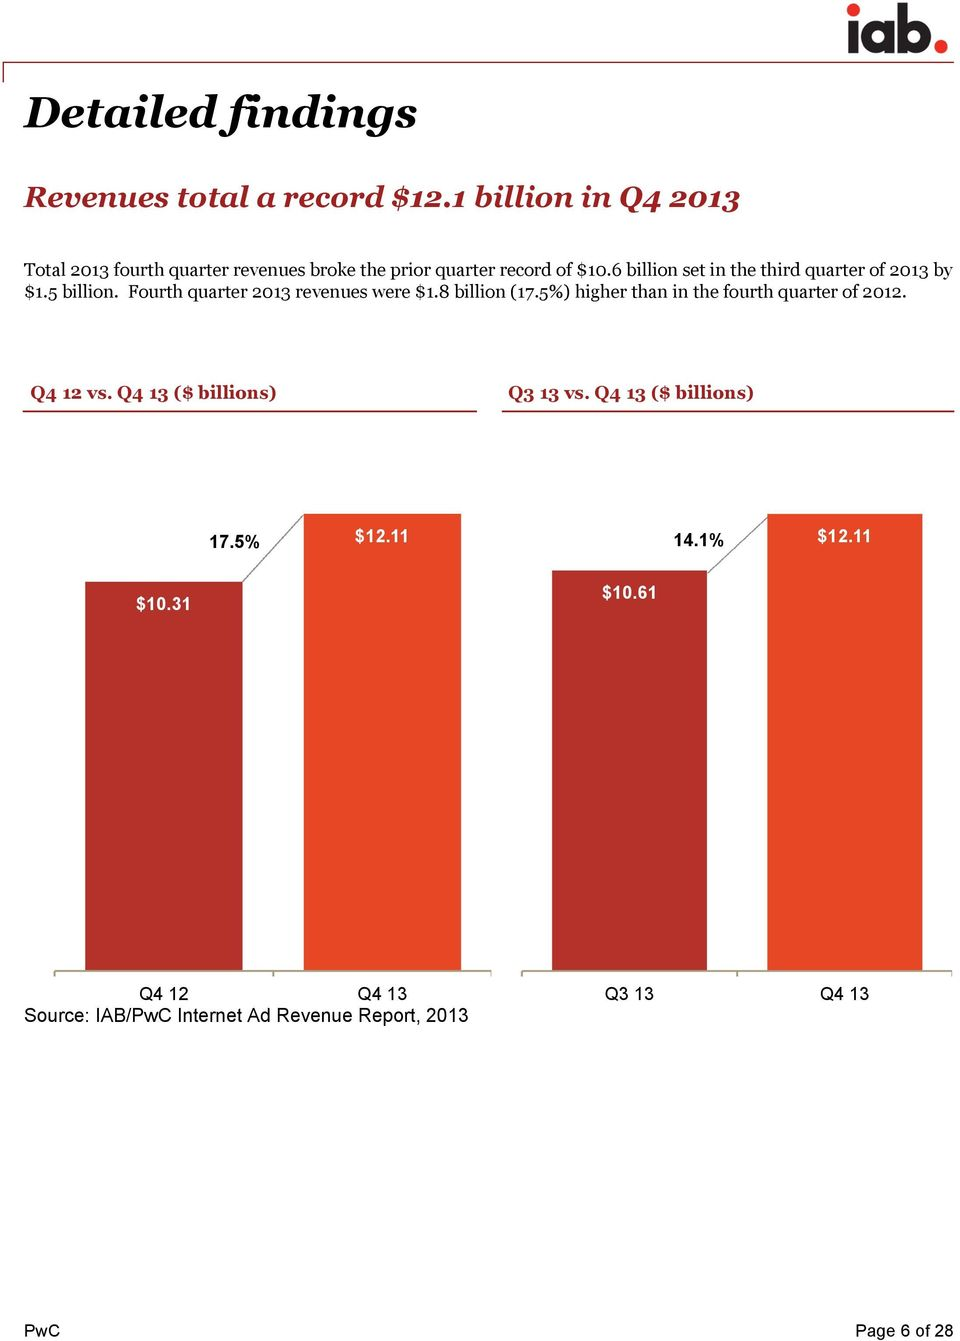 6 billion set in the third quarter of 2013 by $1.5 billion. Fourth quarter 2013 revenues were $1.8 billion (17.